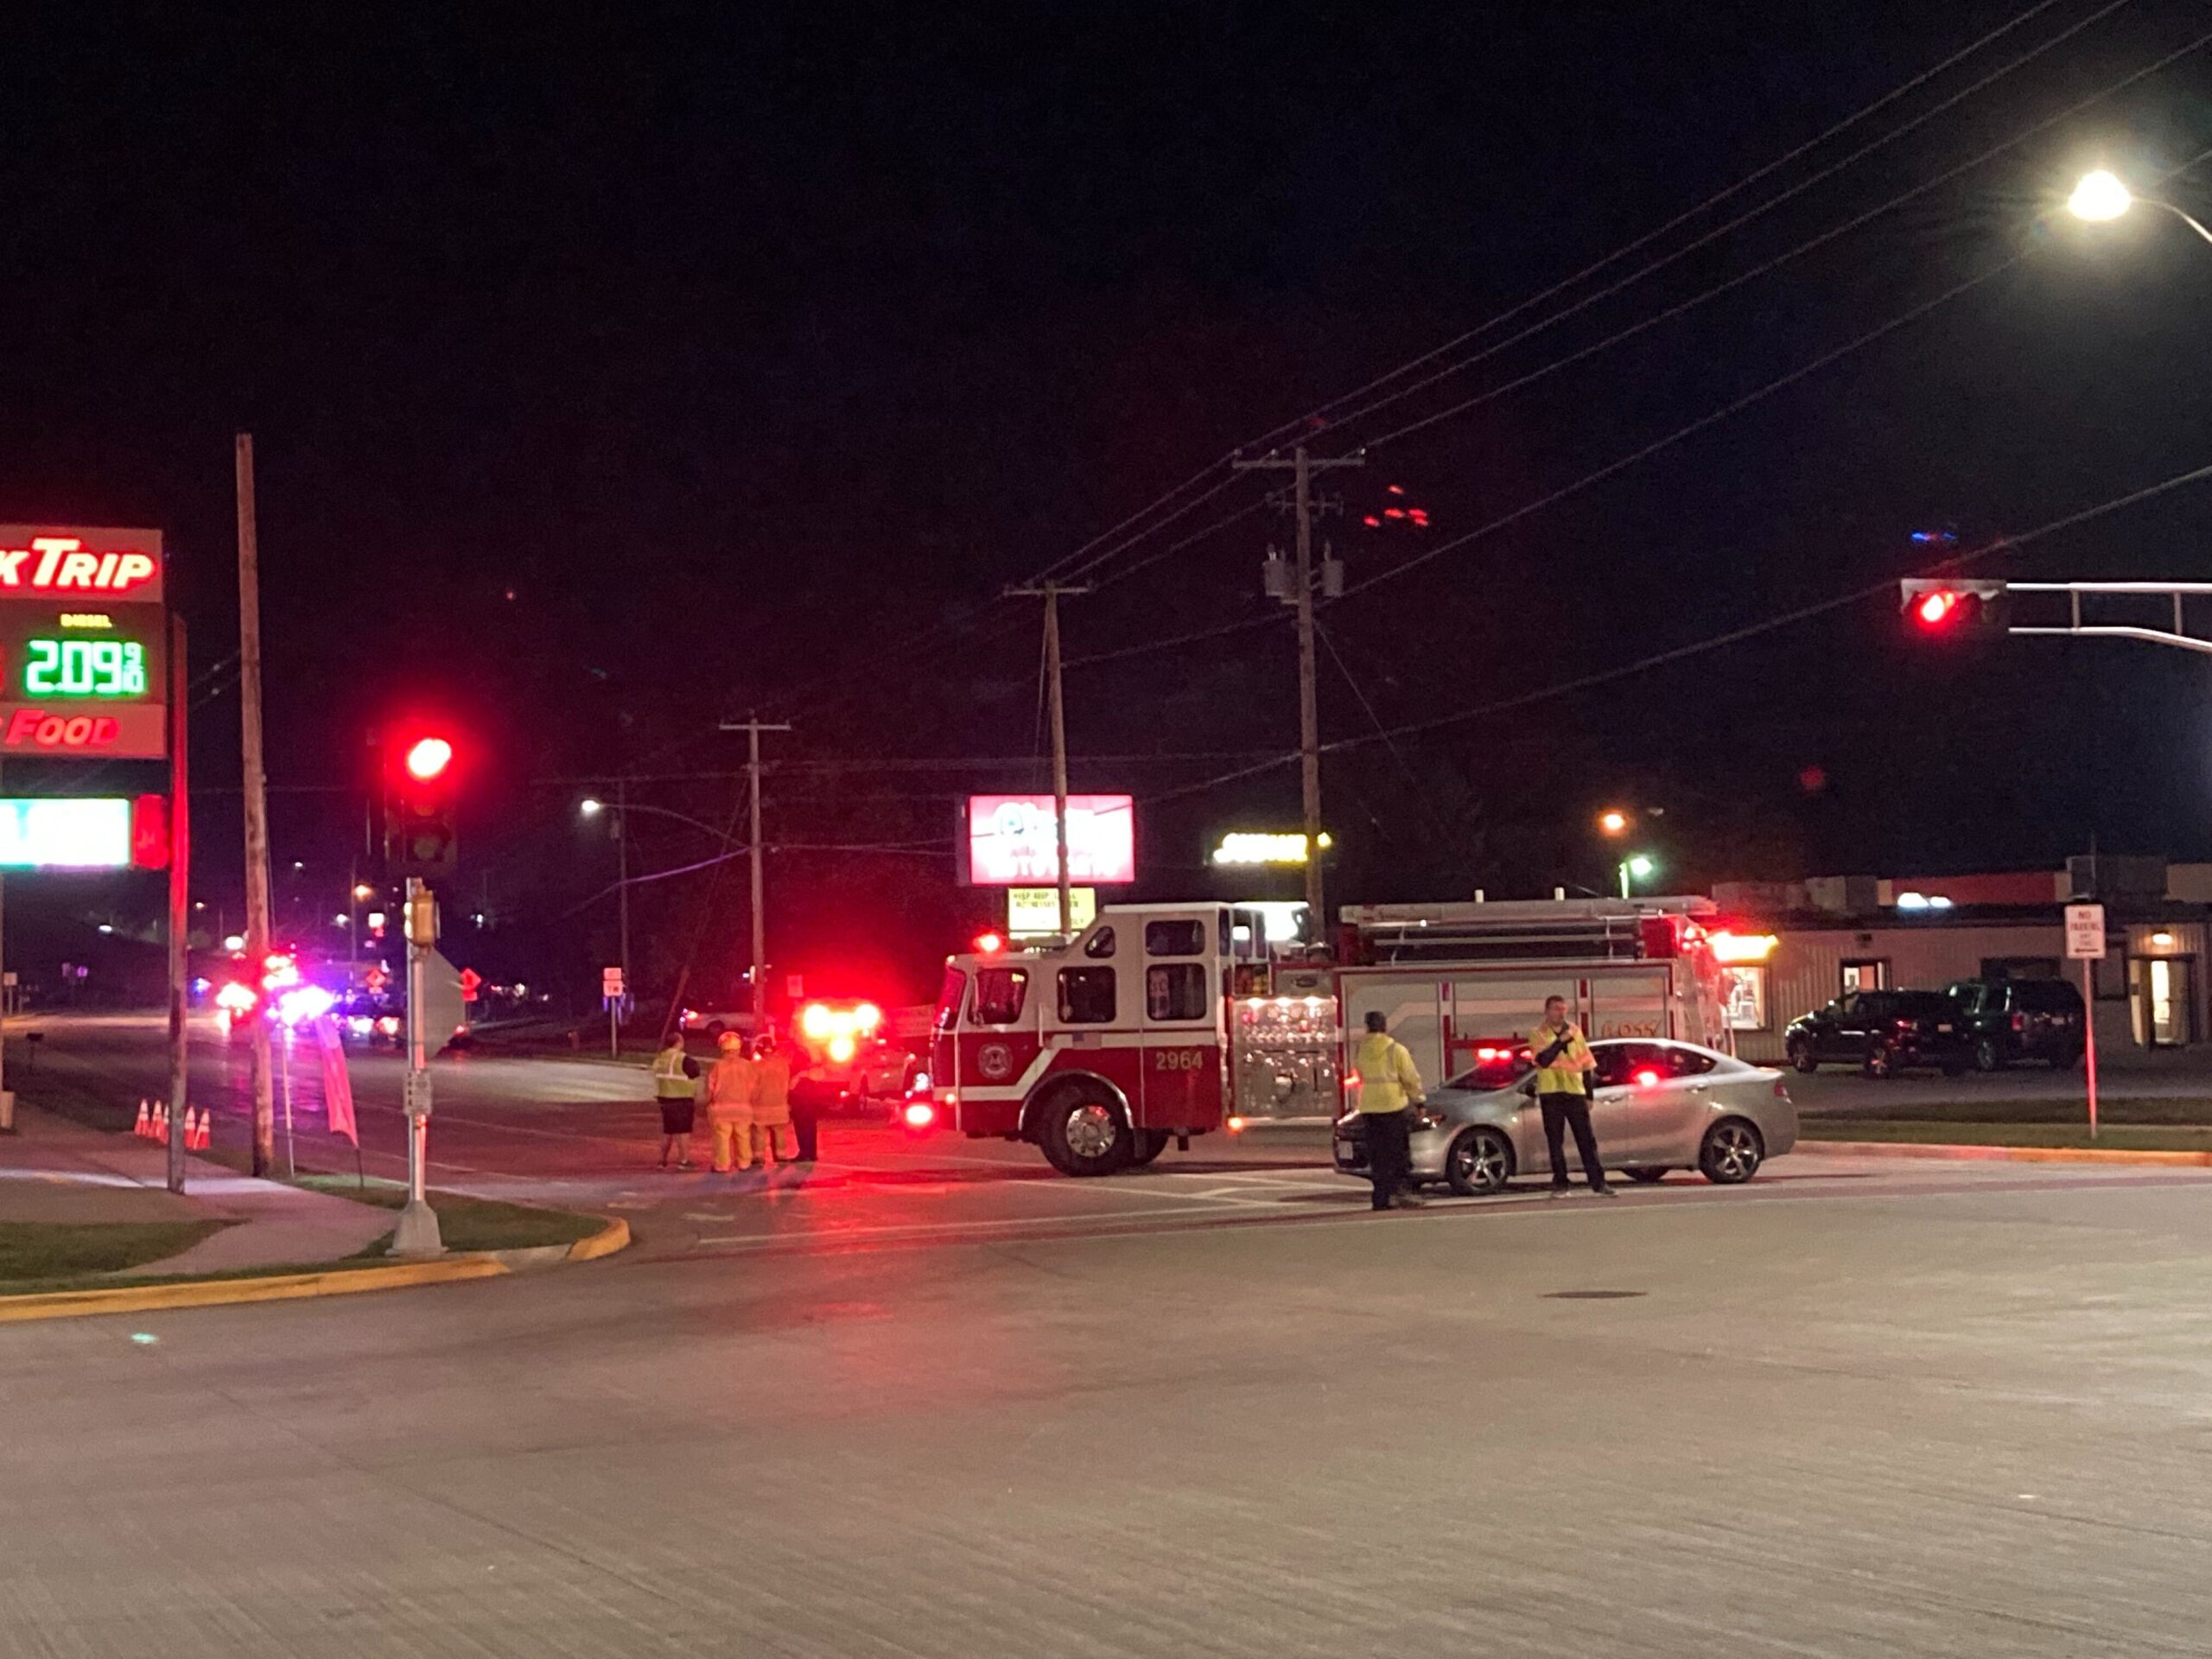 Four people taken to hospital following shooting in Mayville